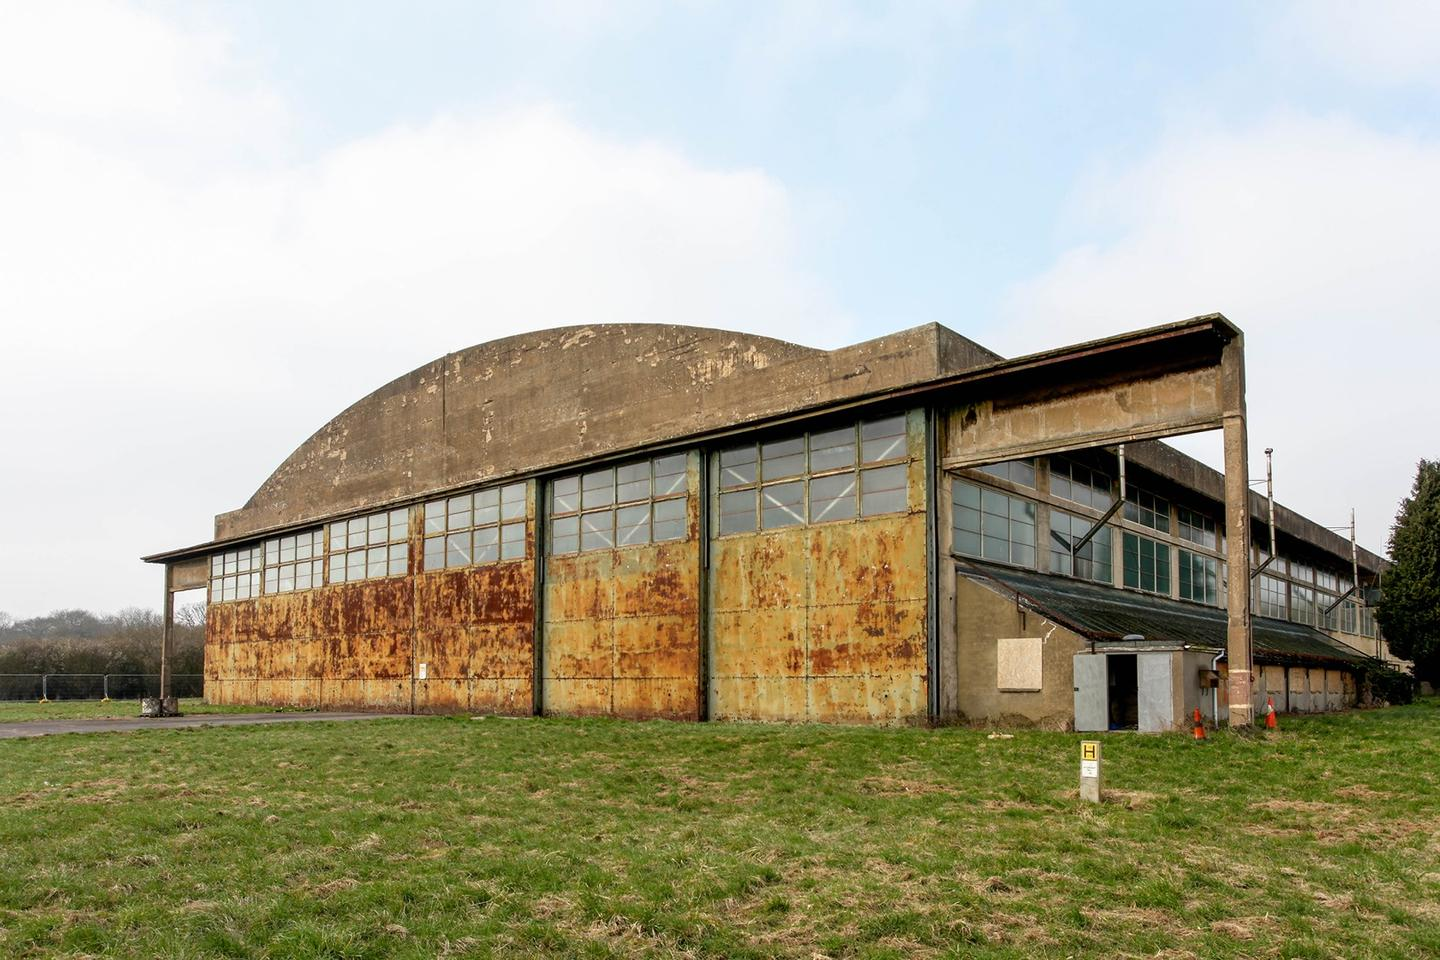 Dyson has restored old WWII hangars as part of its new EV development facility